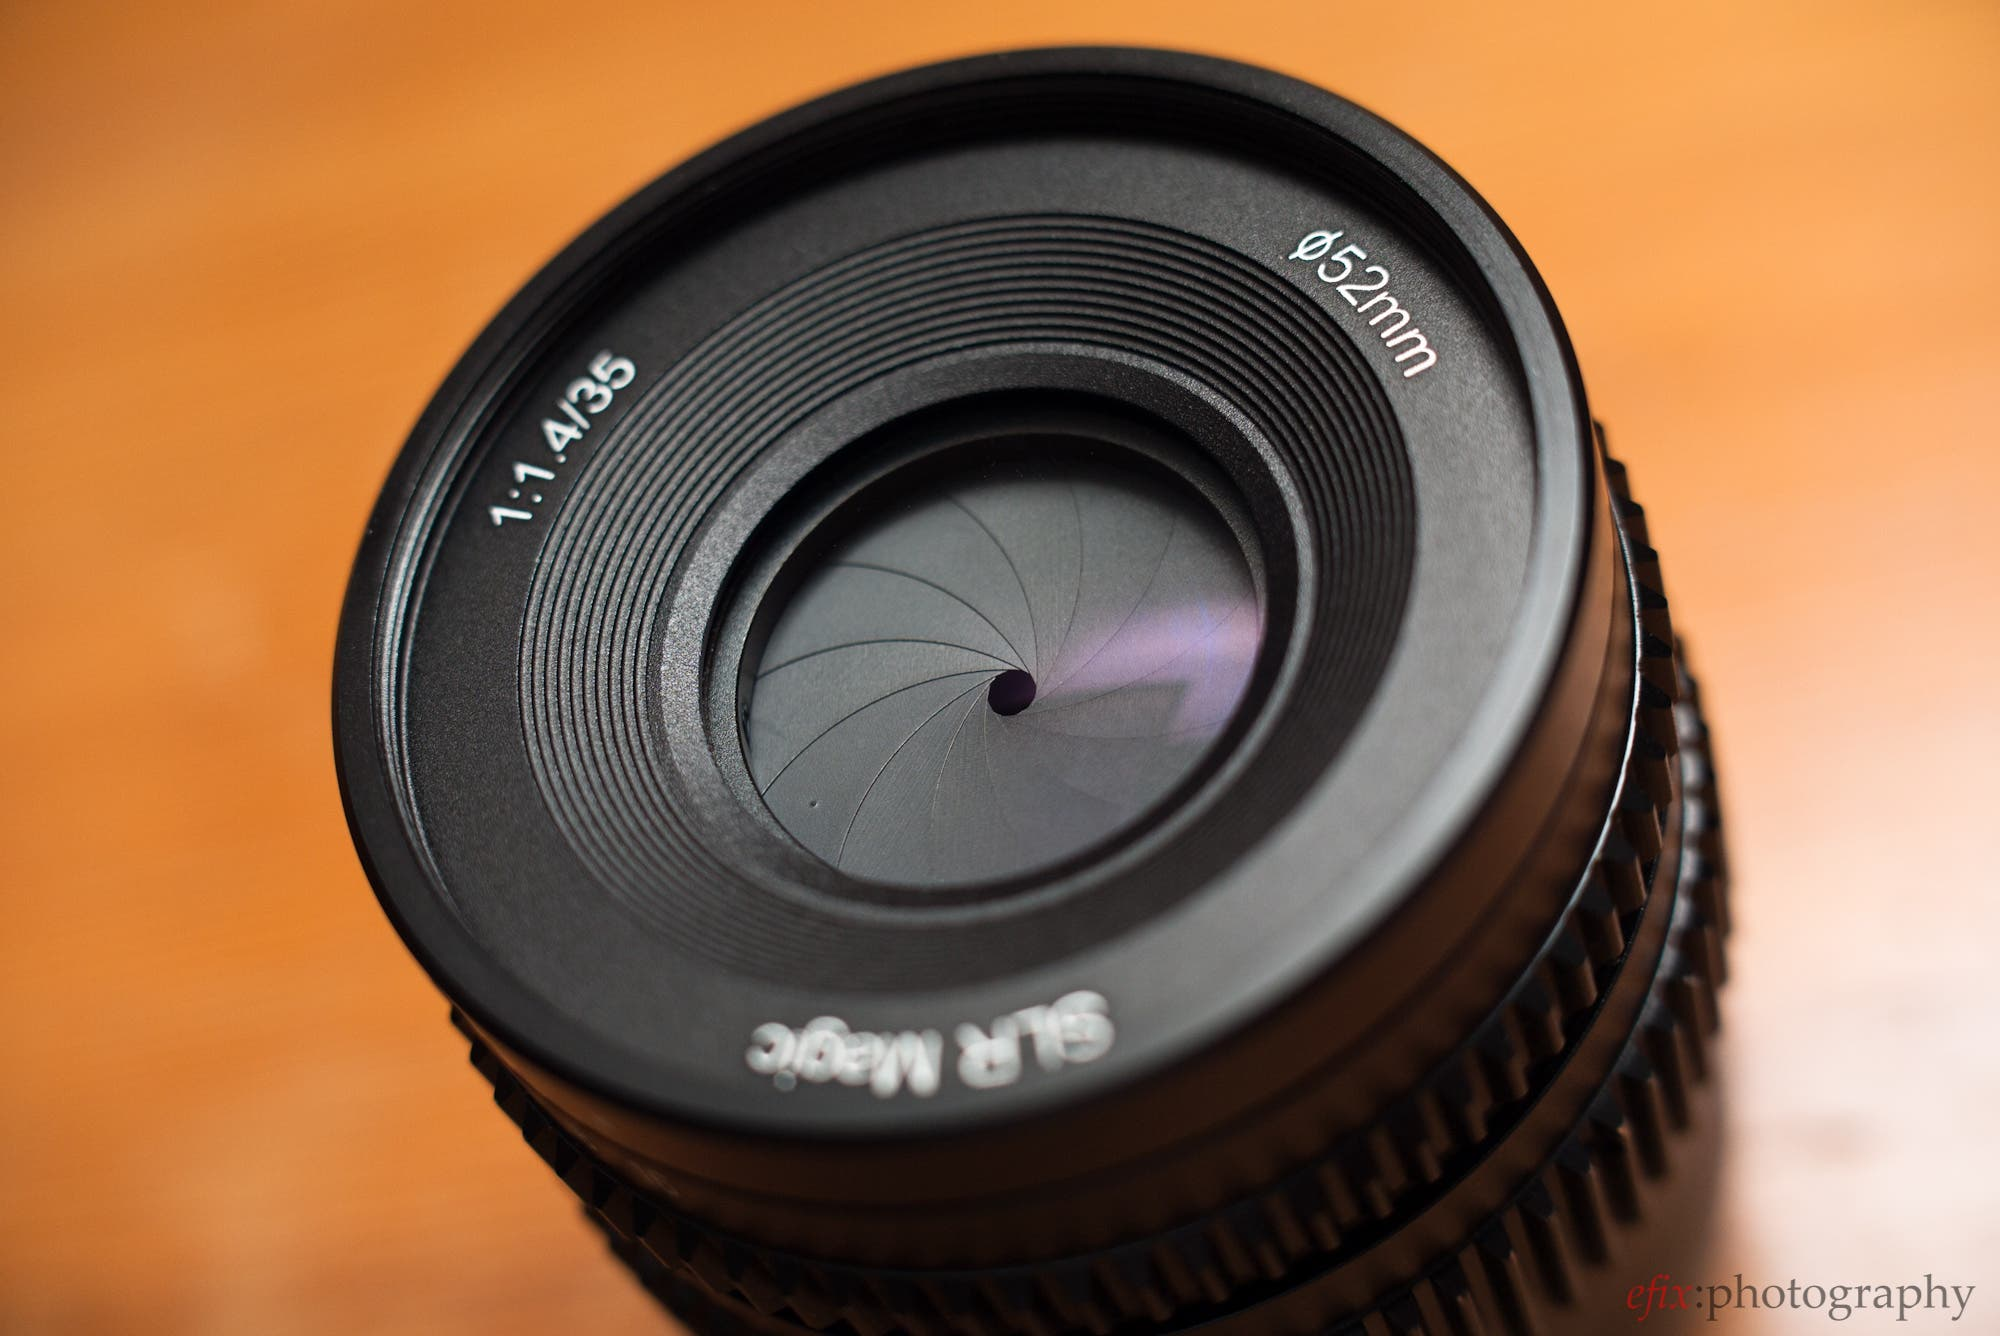 Review: SLR Magic 35mm T1.4 (Micro Four Thirds)